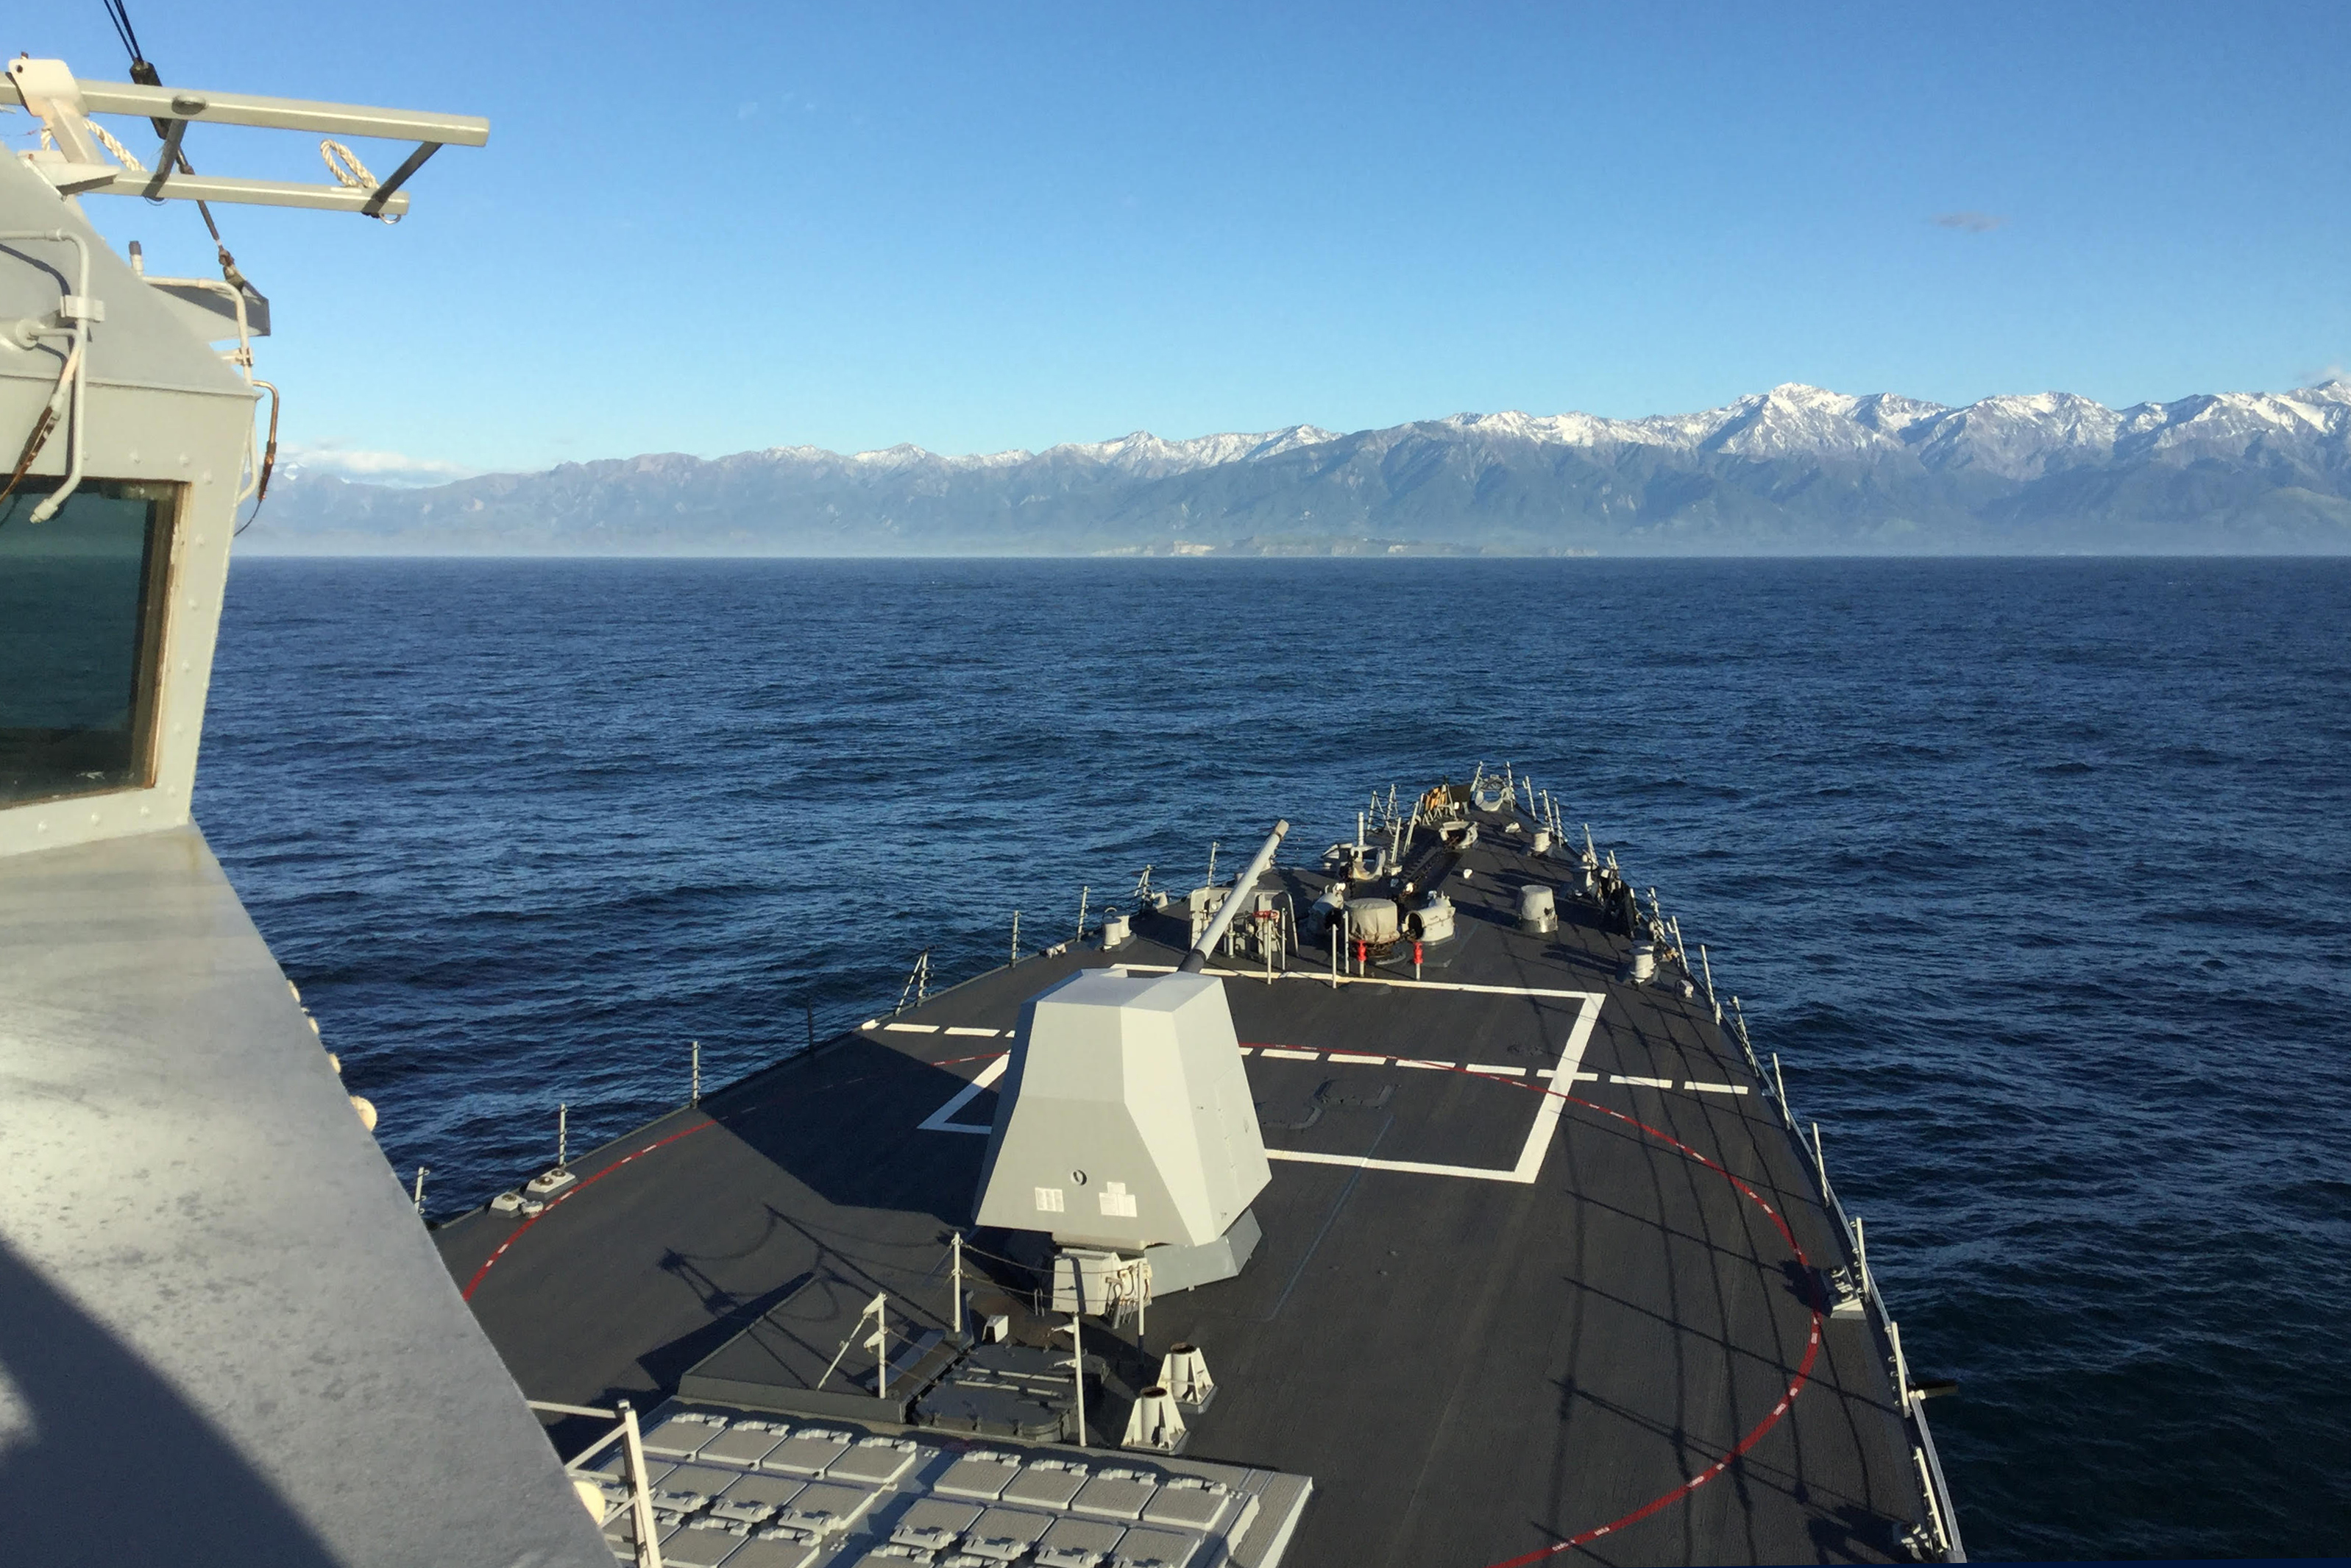 USS Sampson (DDG-102) operates off the coast of Kaikoura at the request of the government of New Zealand.